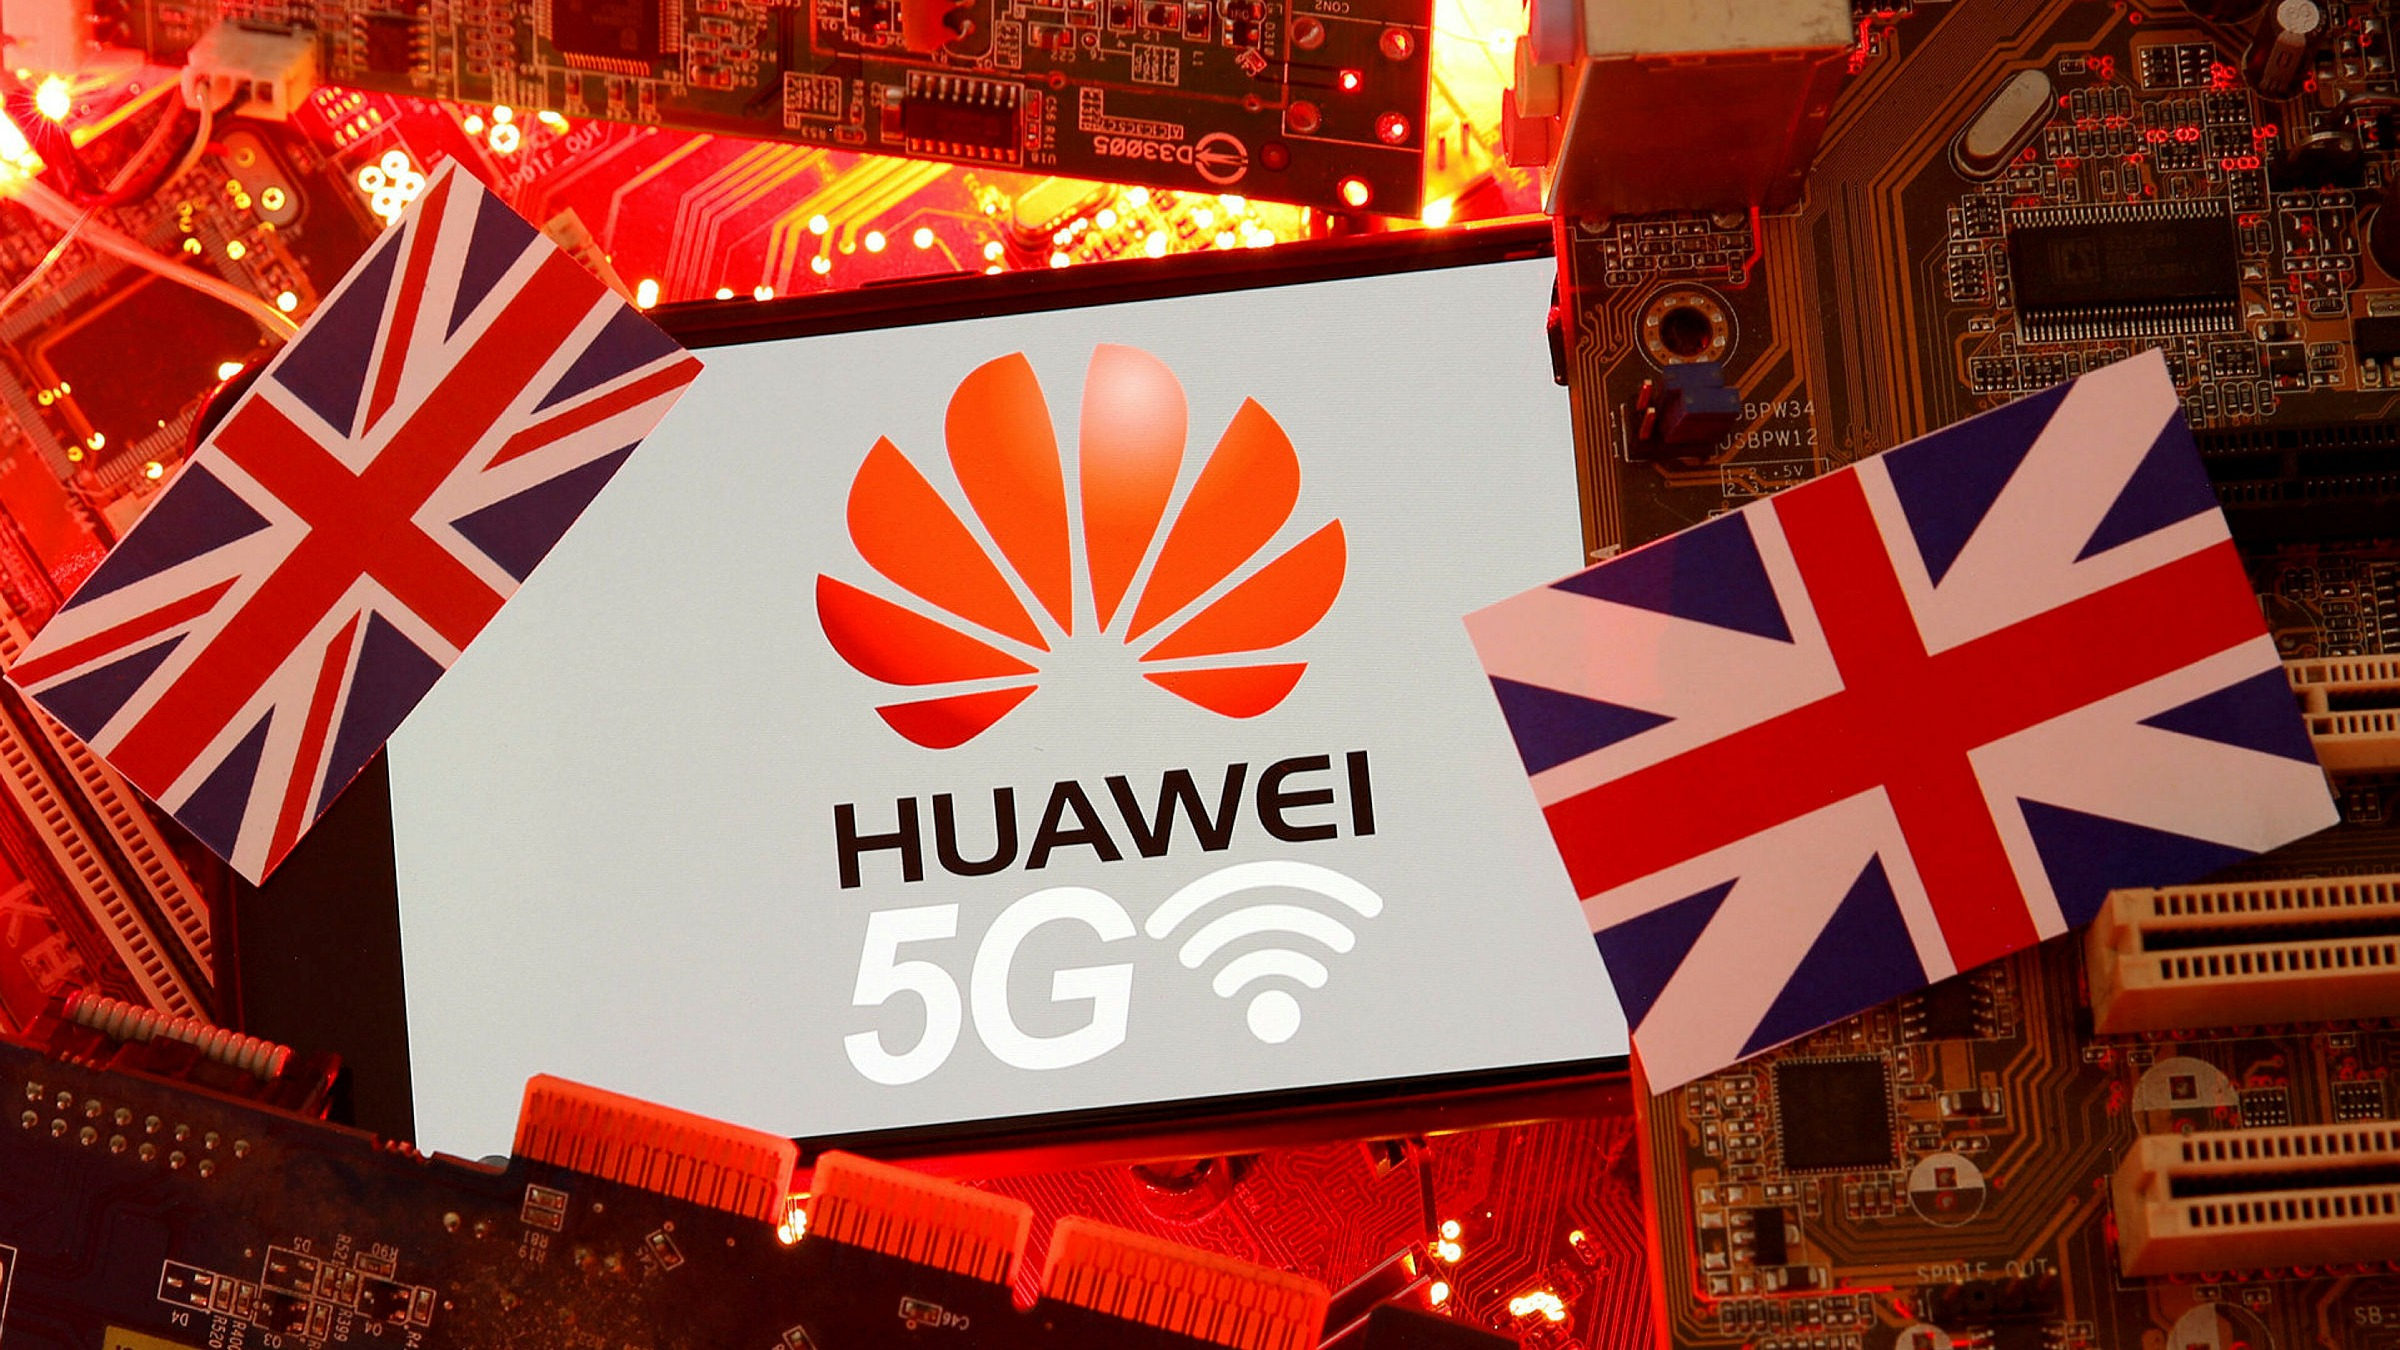 Huawei 5g kits get banned in UK